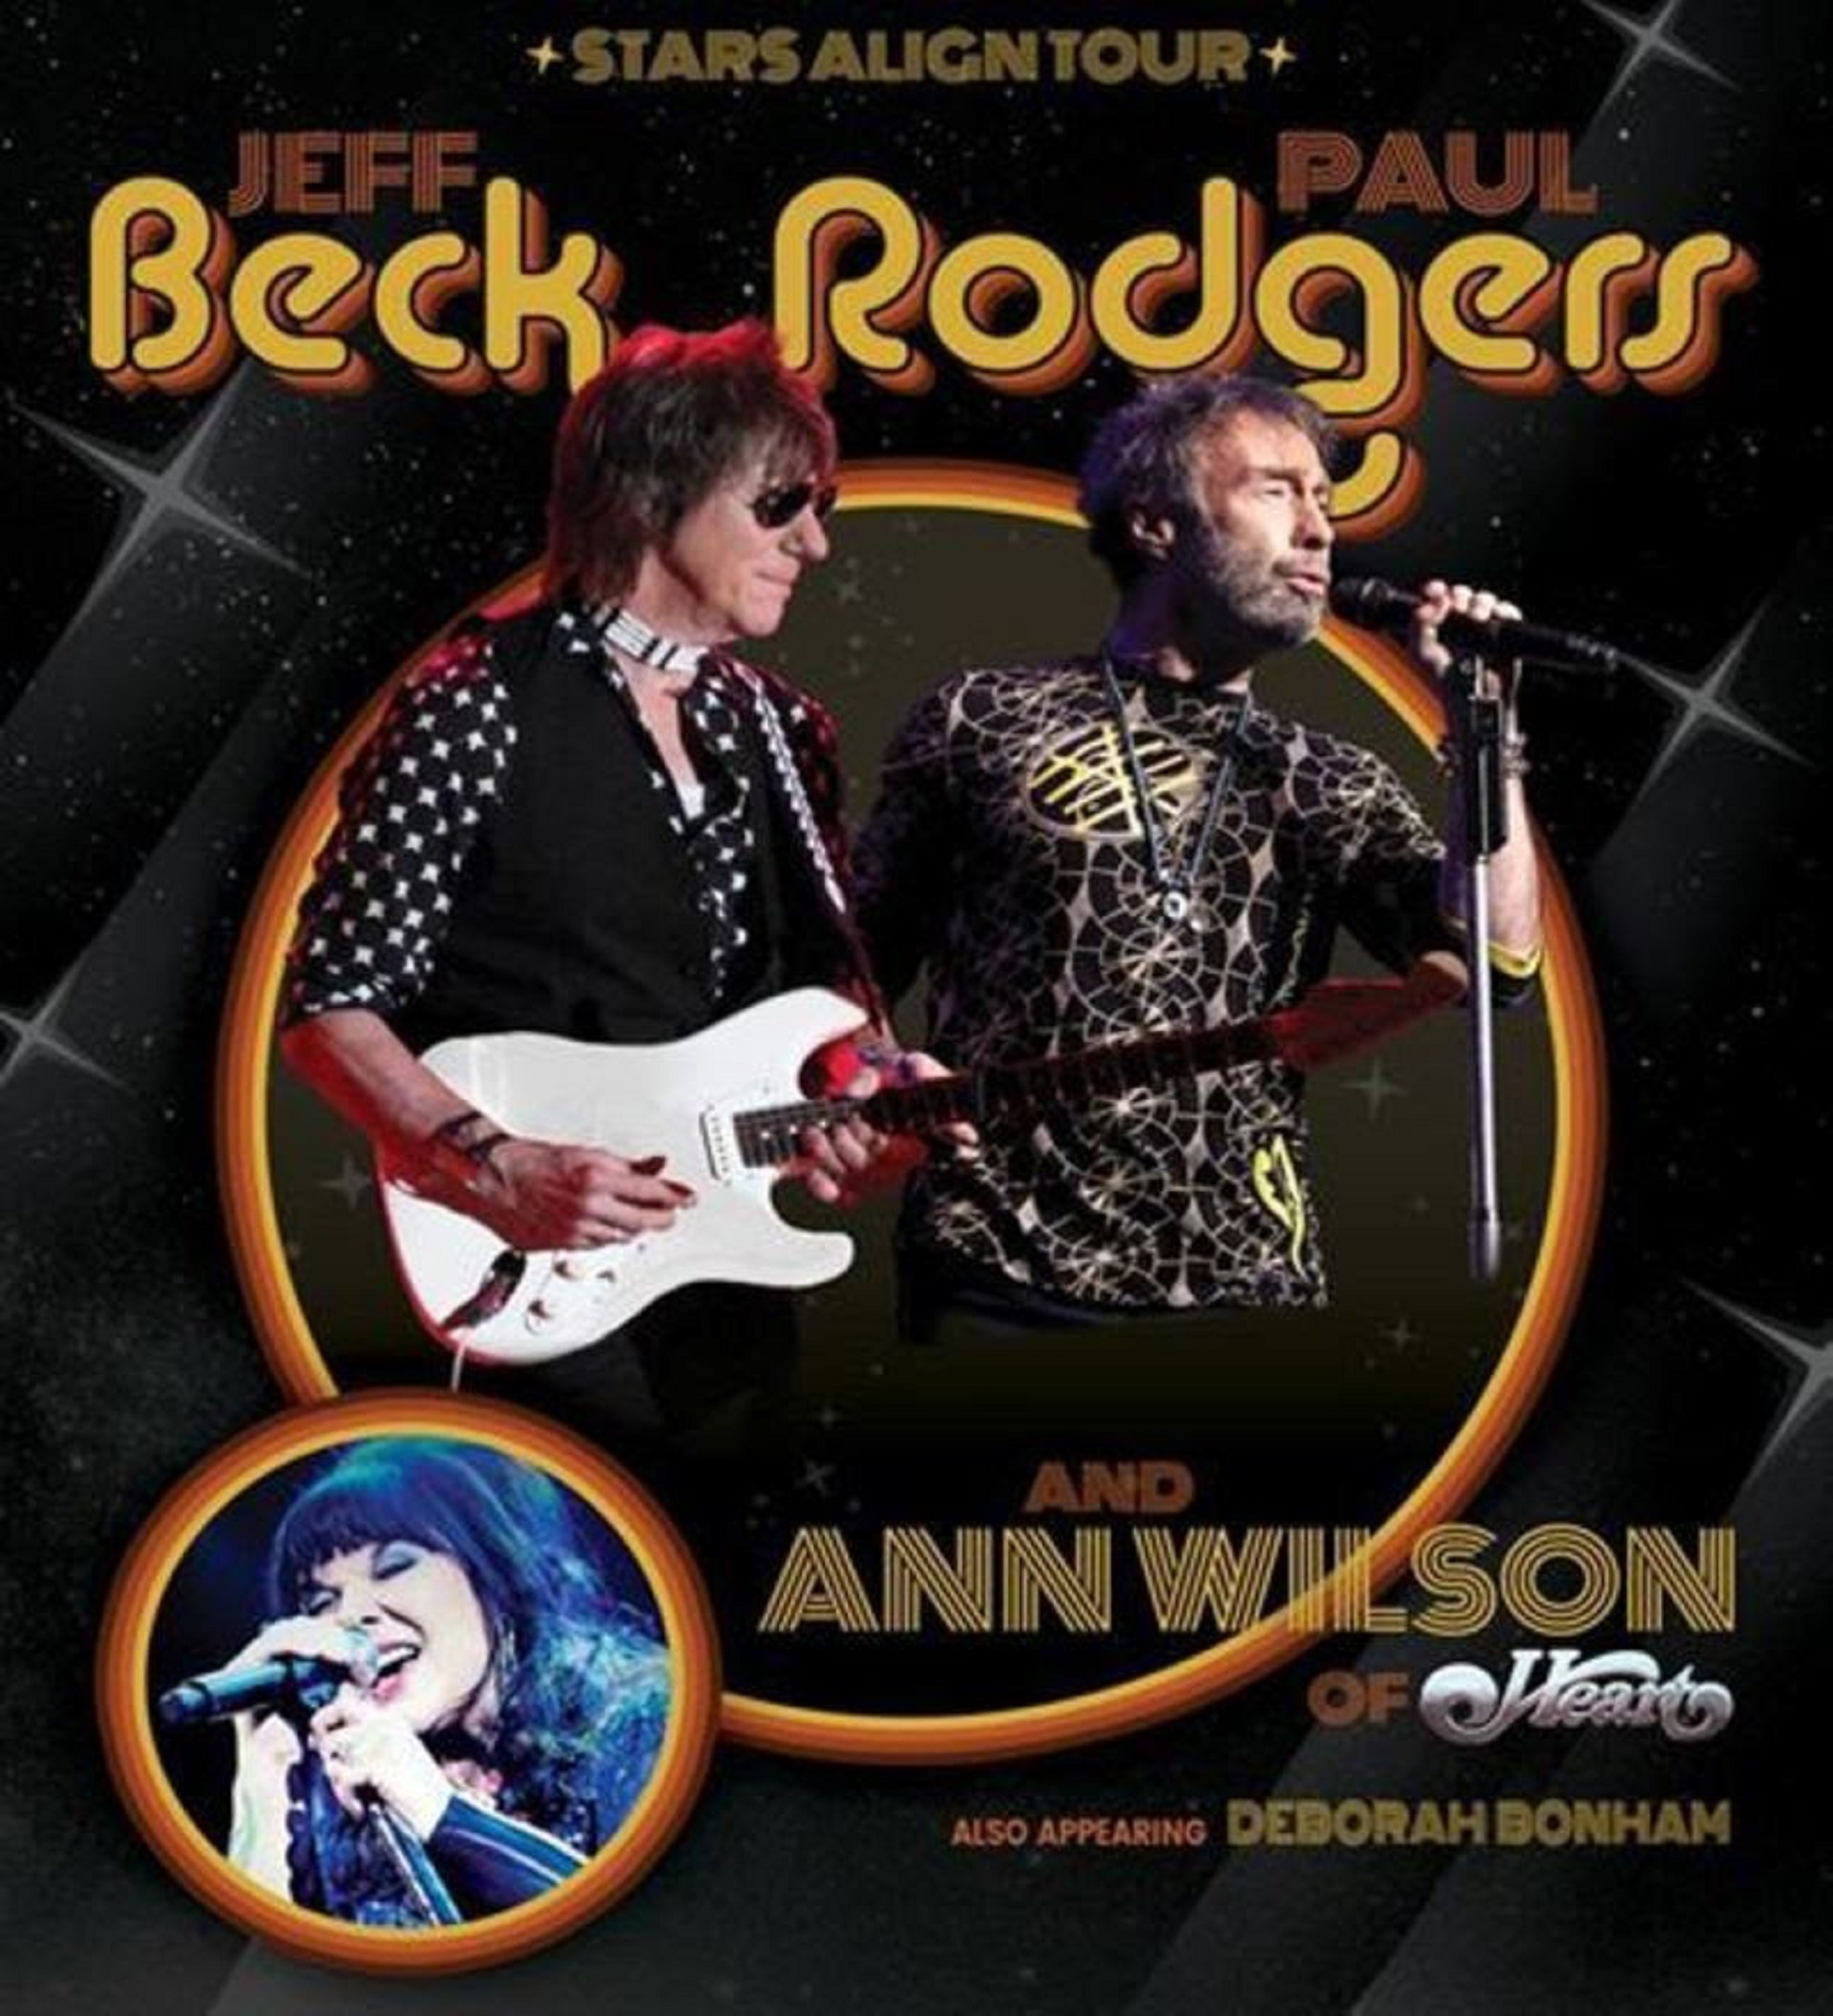 hight resolution of stars align tour begins with paul rodgers and jeff beck